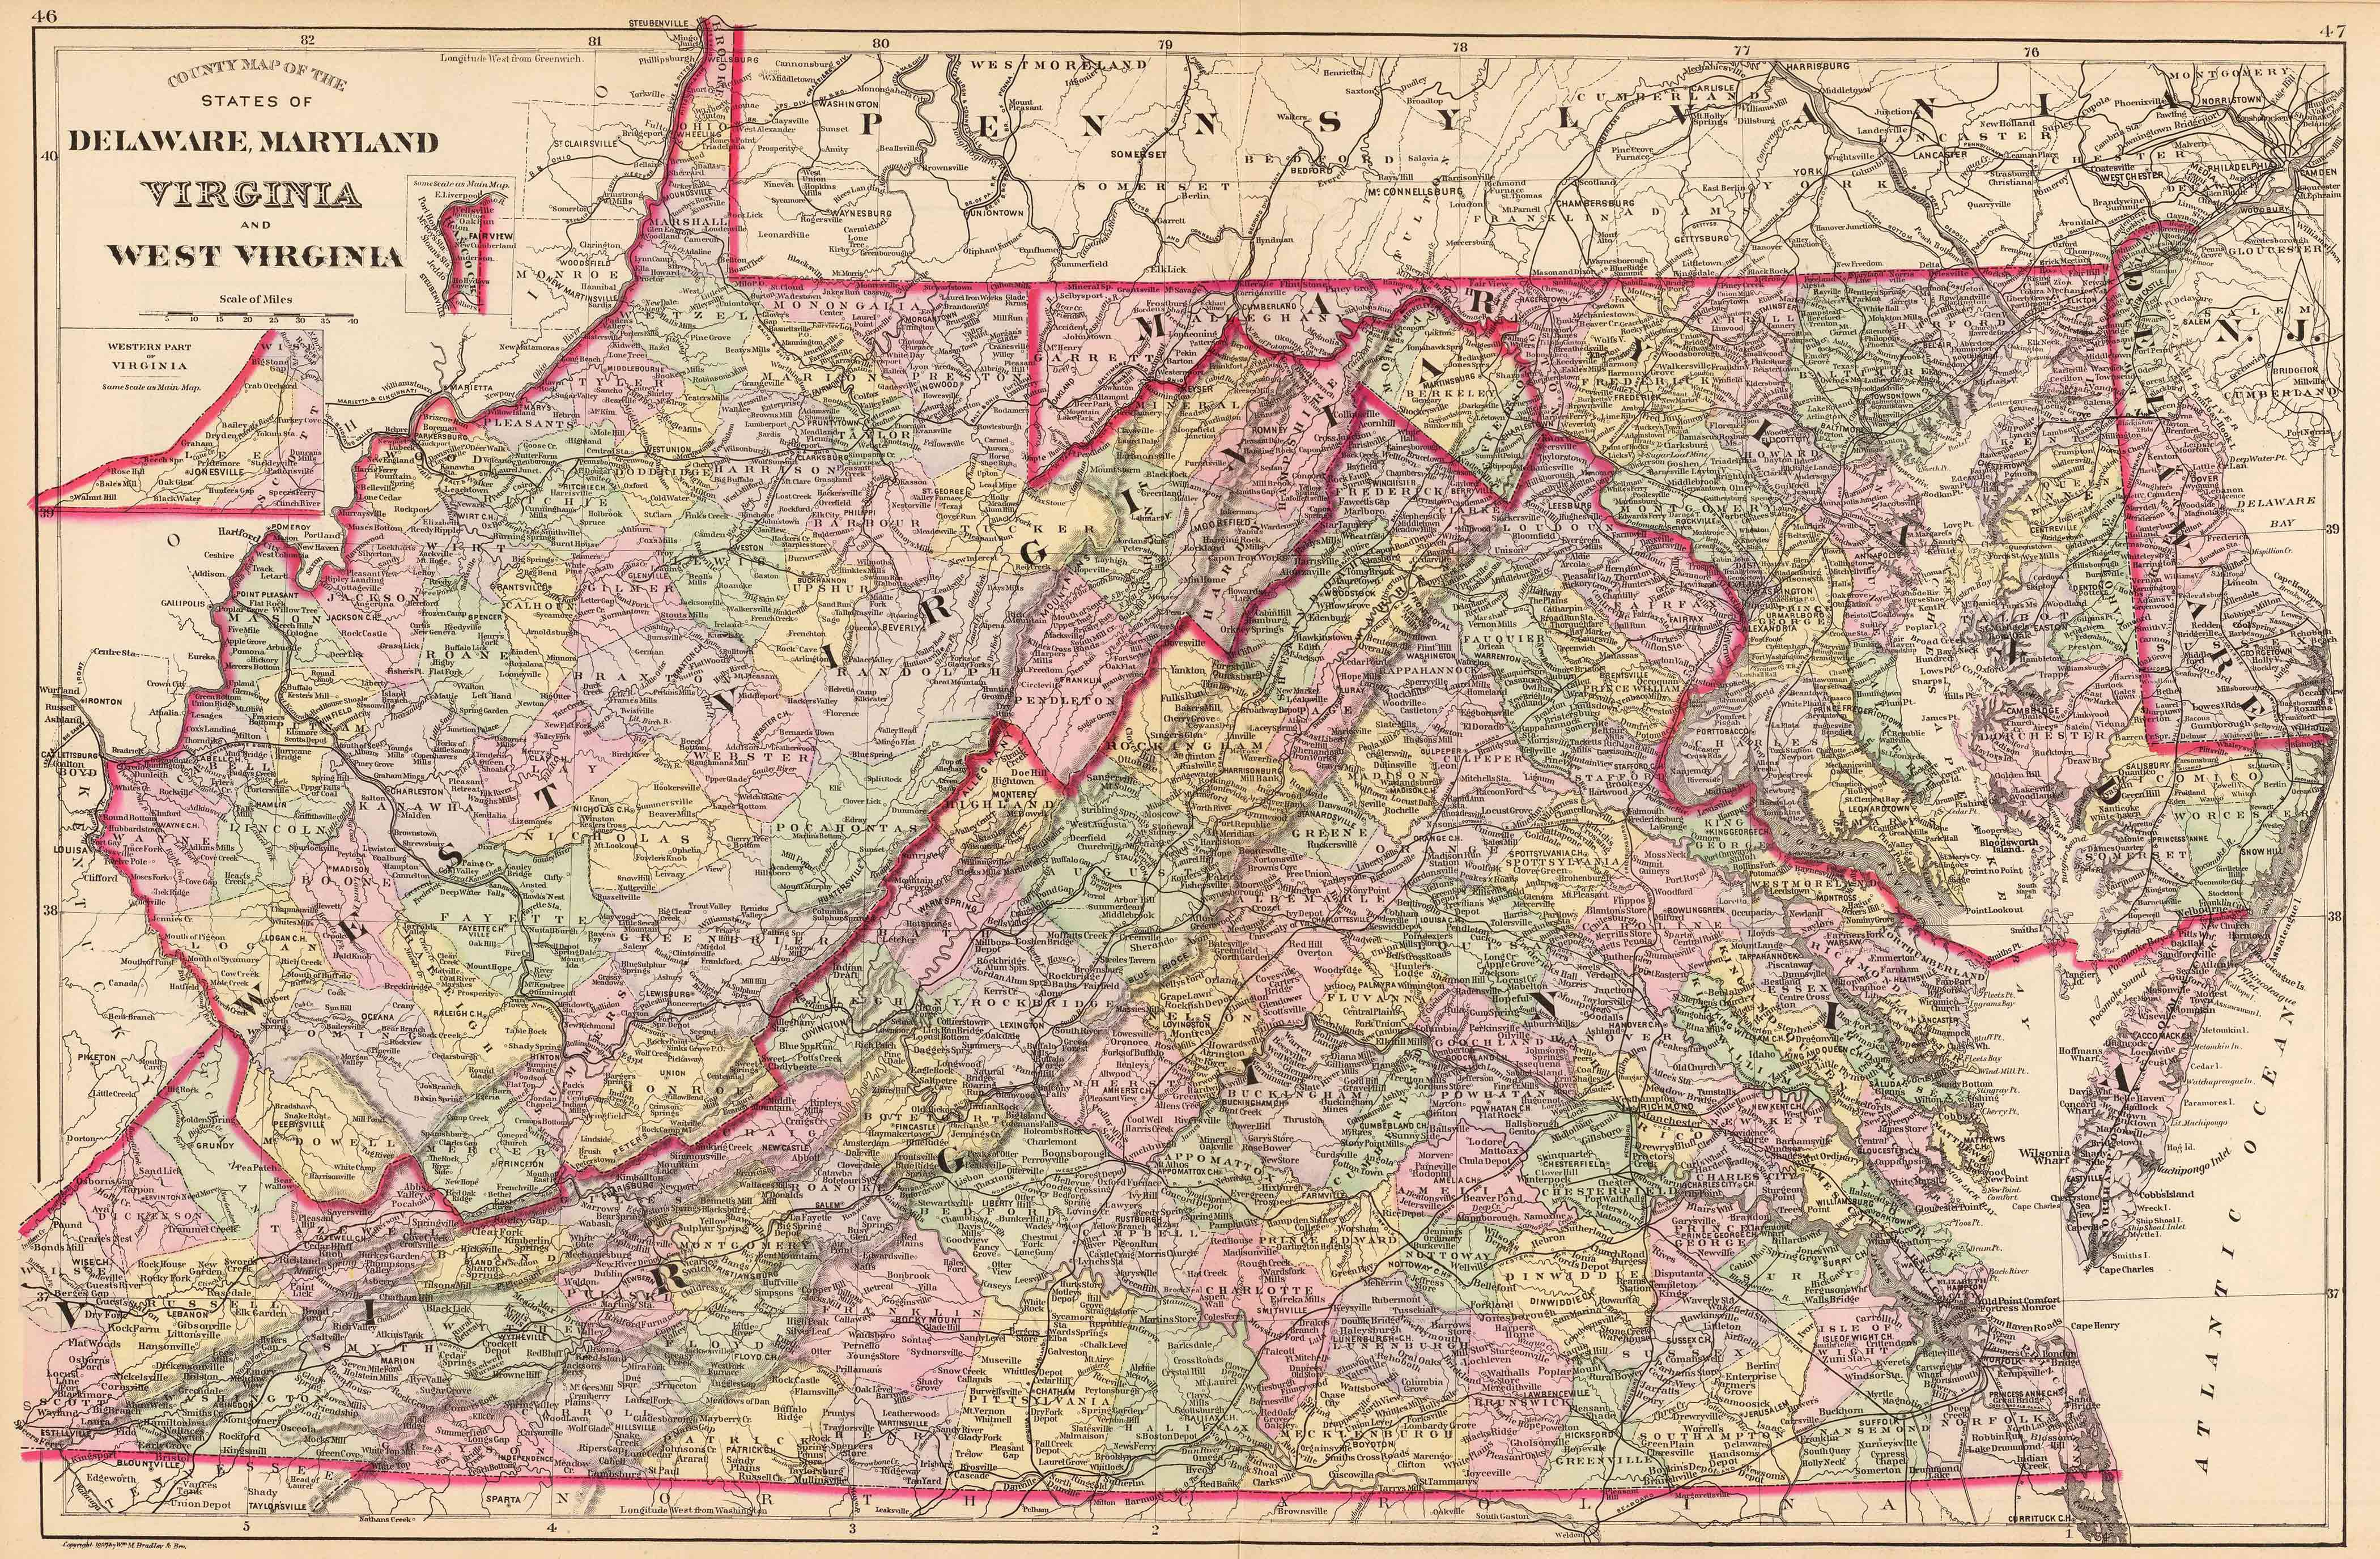 Old Historical City, County and State Maps of West Virginia on tennessee's state map, state of maryland map, hawaii's state map, canada's state map, iowa's state map, wyoming's state map, maine's state map, oregon's state map, new jersey's state map, idaho's state map, indiana's state map, alaska state map, minnesota's state map, state of virginia map, alabama state map, california state map, new york's state map, arizona's state map, floridas state map, india's state map,